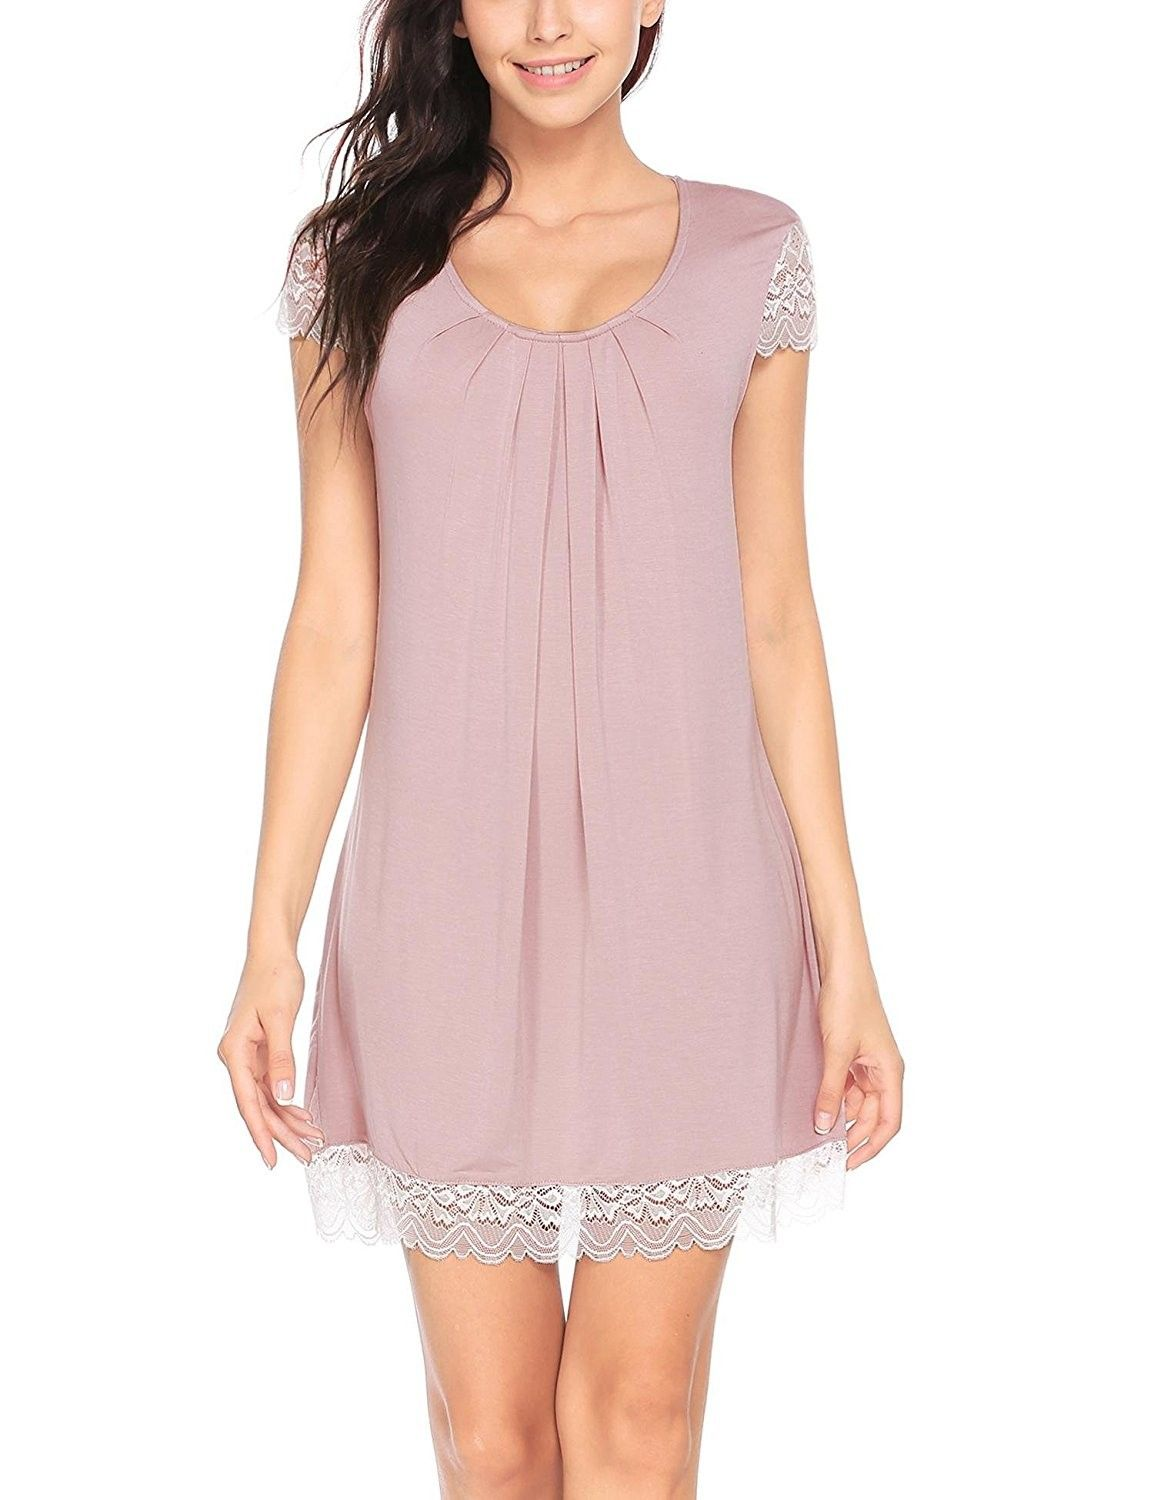 Pajama Nightgown Women Comfort Nightwear Lace Cap Sleeve Chemise ... 35b332e50